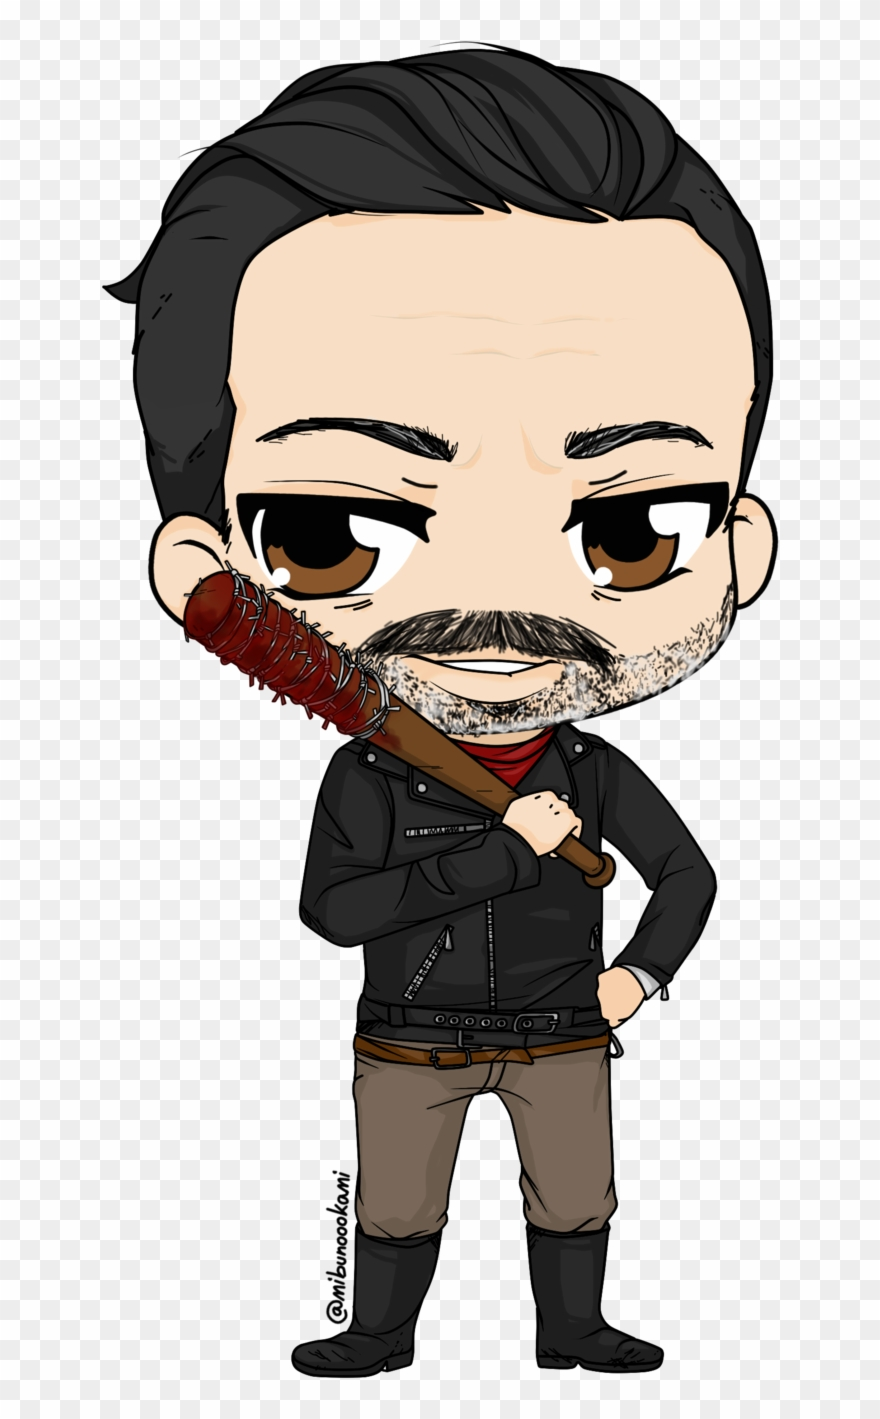 Walking dead images clipart clipart black and white The Walking Dead Clipart - Walking Dead Negan Chibi - Png ... clipart black and white